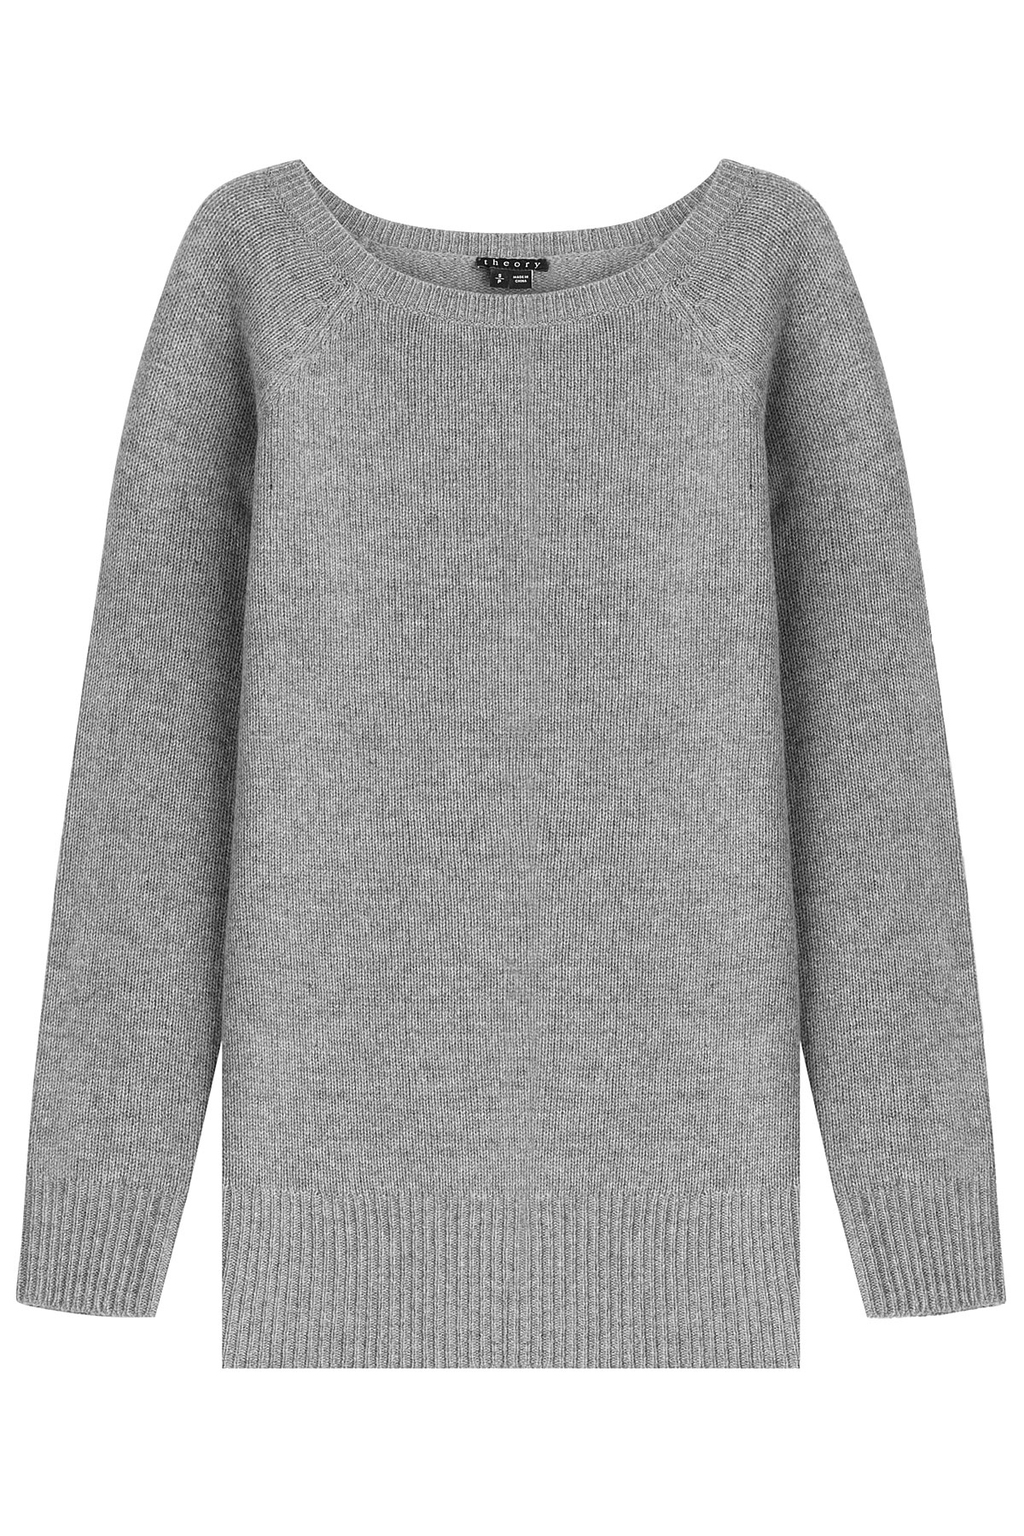 Cashmere Pullover Grey - neckline: round neck; pattern: plain; style: standard; predominant colour: mid grey; occasions: casual; length: standard; fit: loose; fibres: cashmere - 100%; sleeve length: long sleeve; sleeve style: standard; texture group: knits/crochet; pattern type: fabric; season: a/w 2015